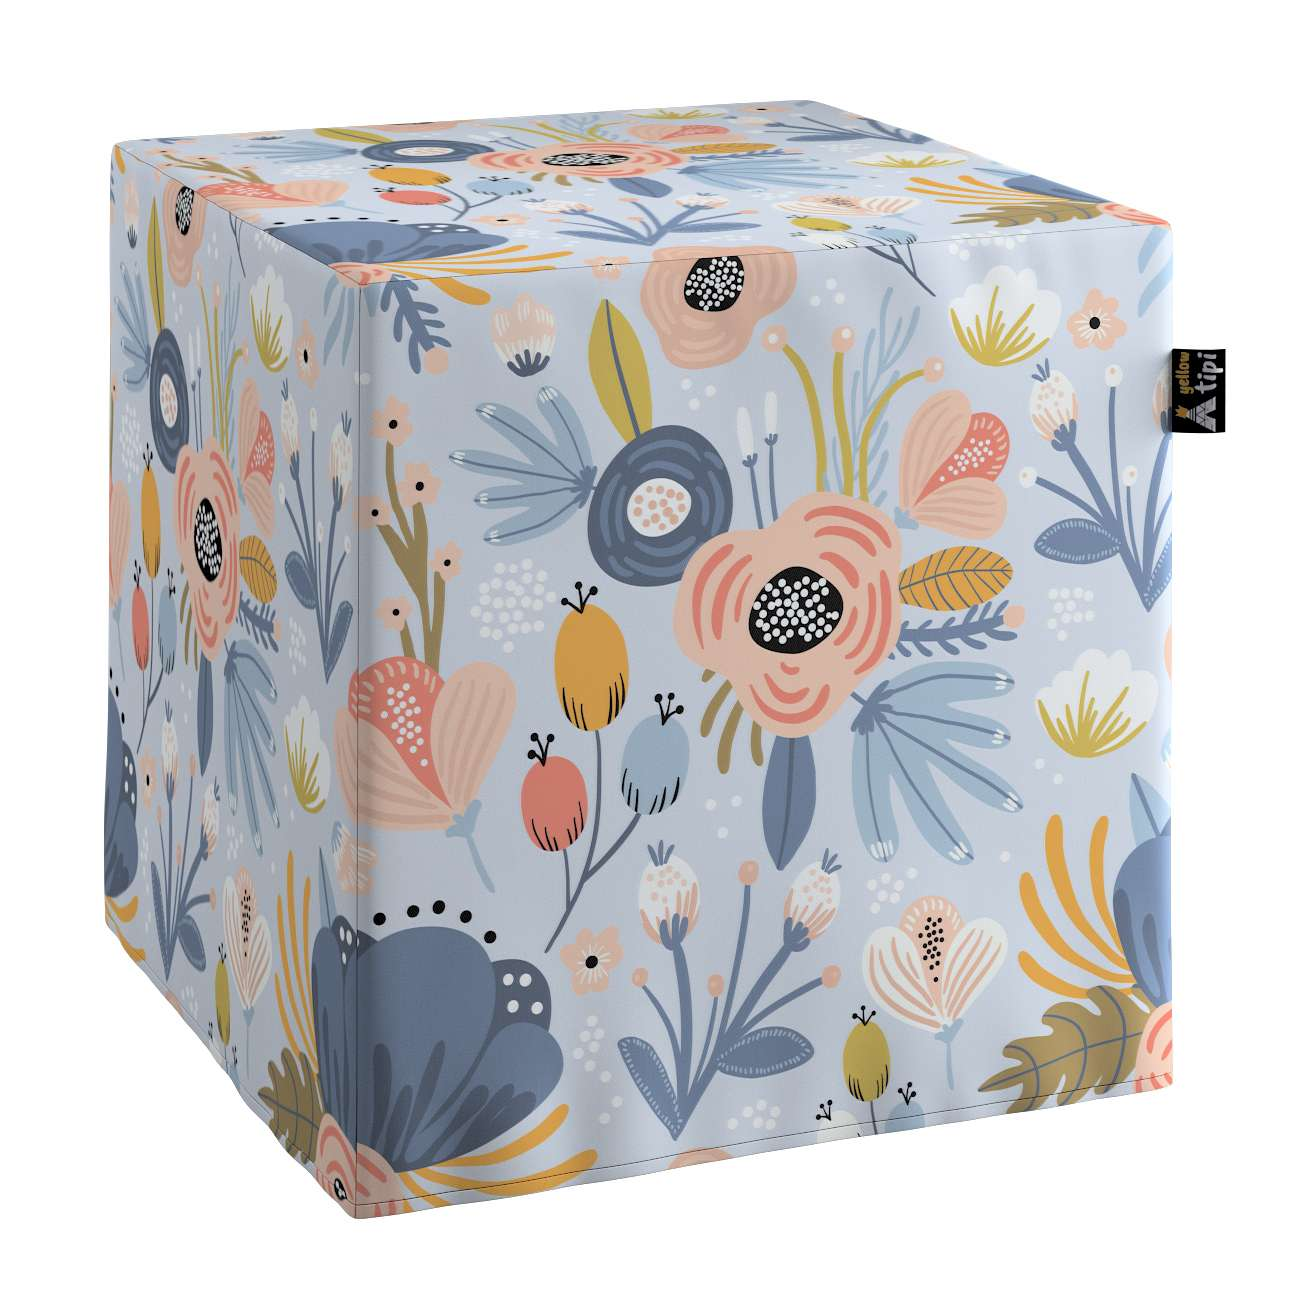 Nano cube pouf in collection Magic Collection, fabric: 500-05